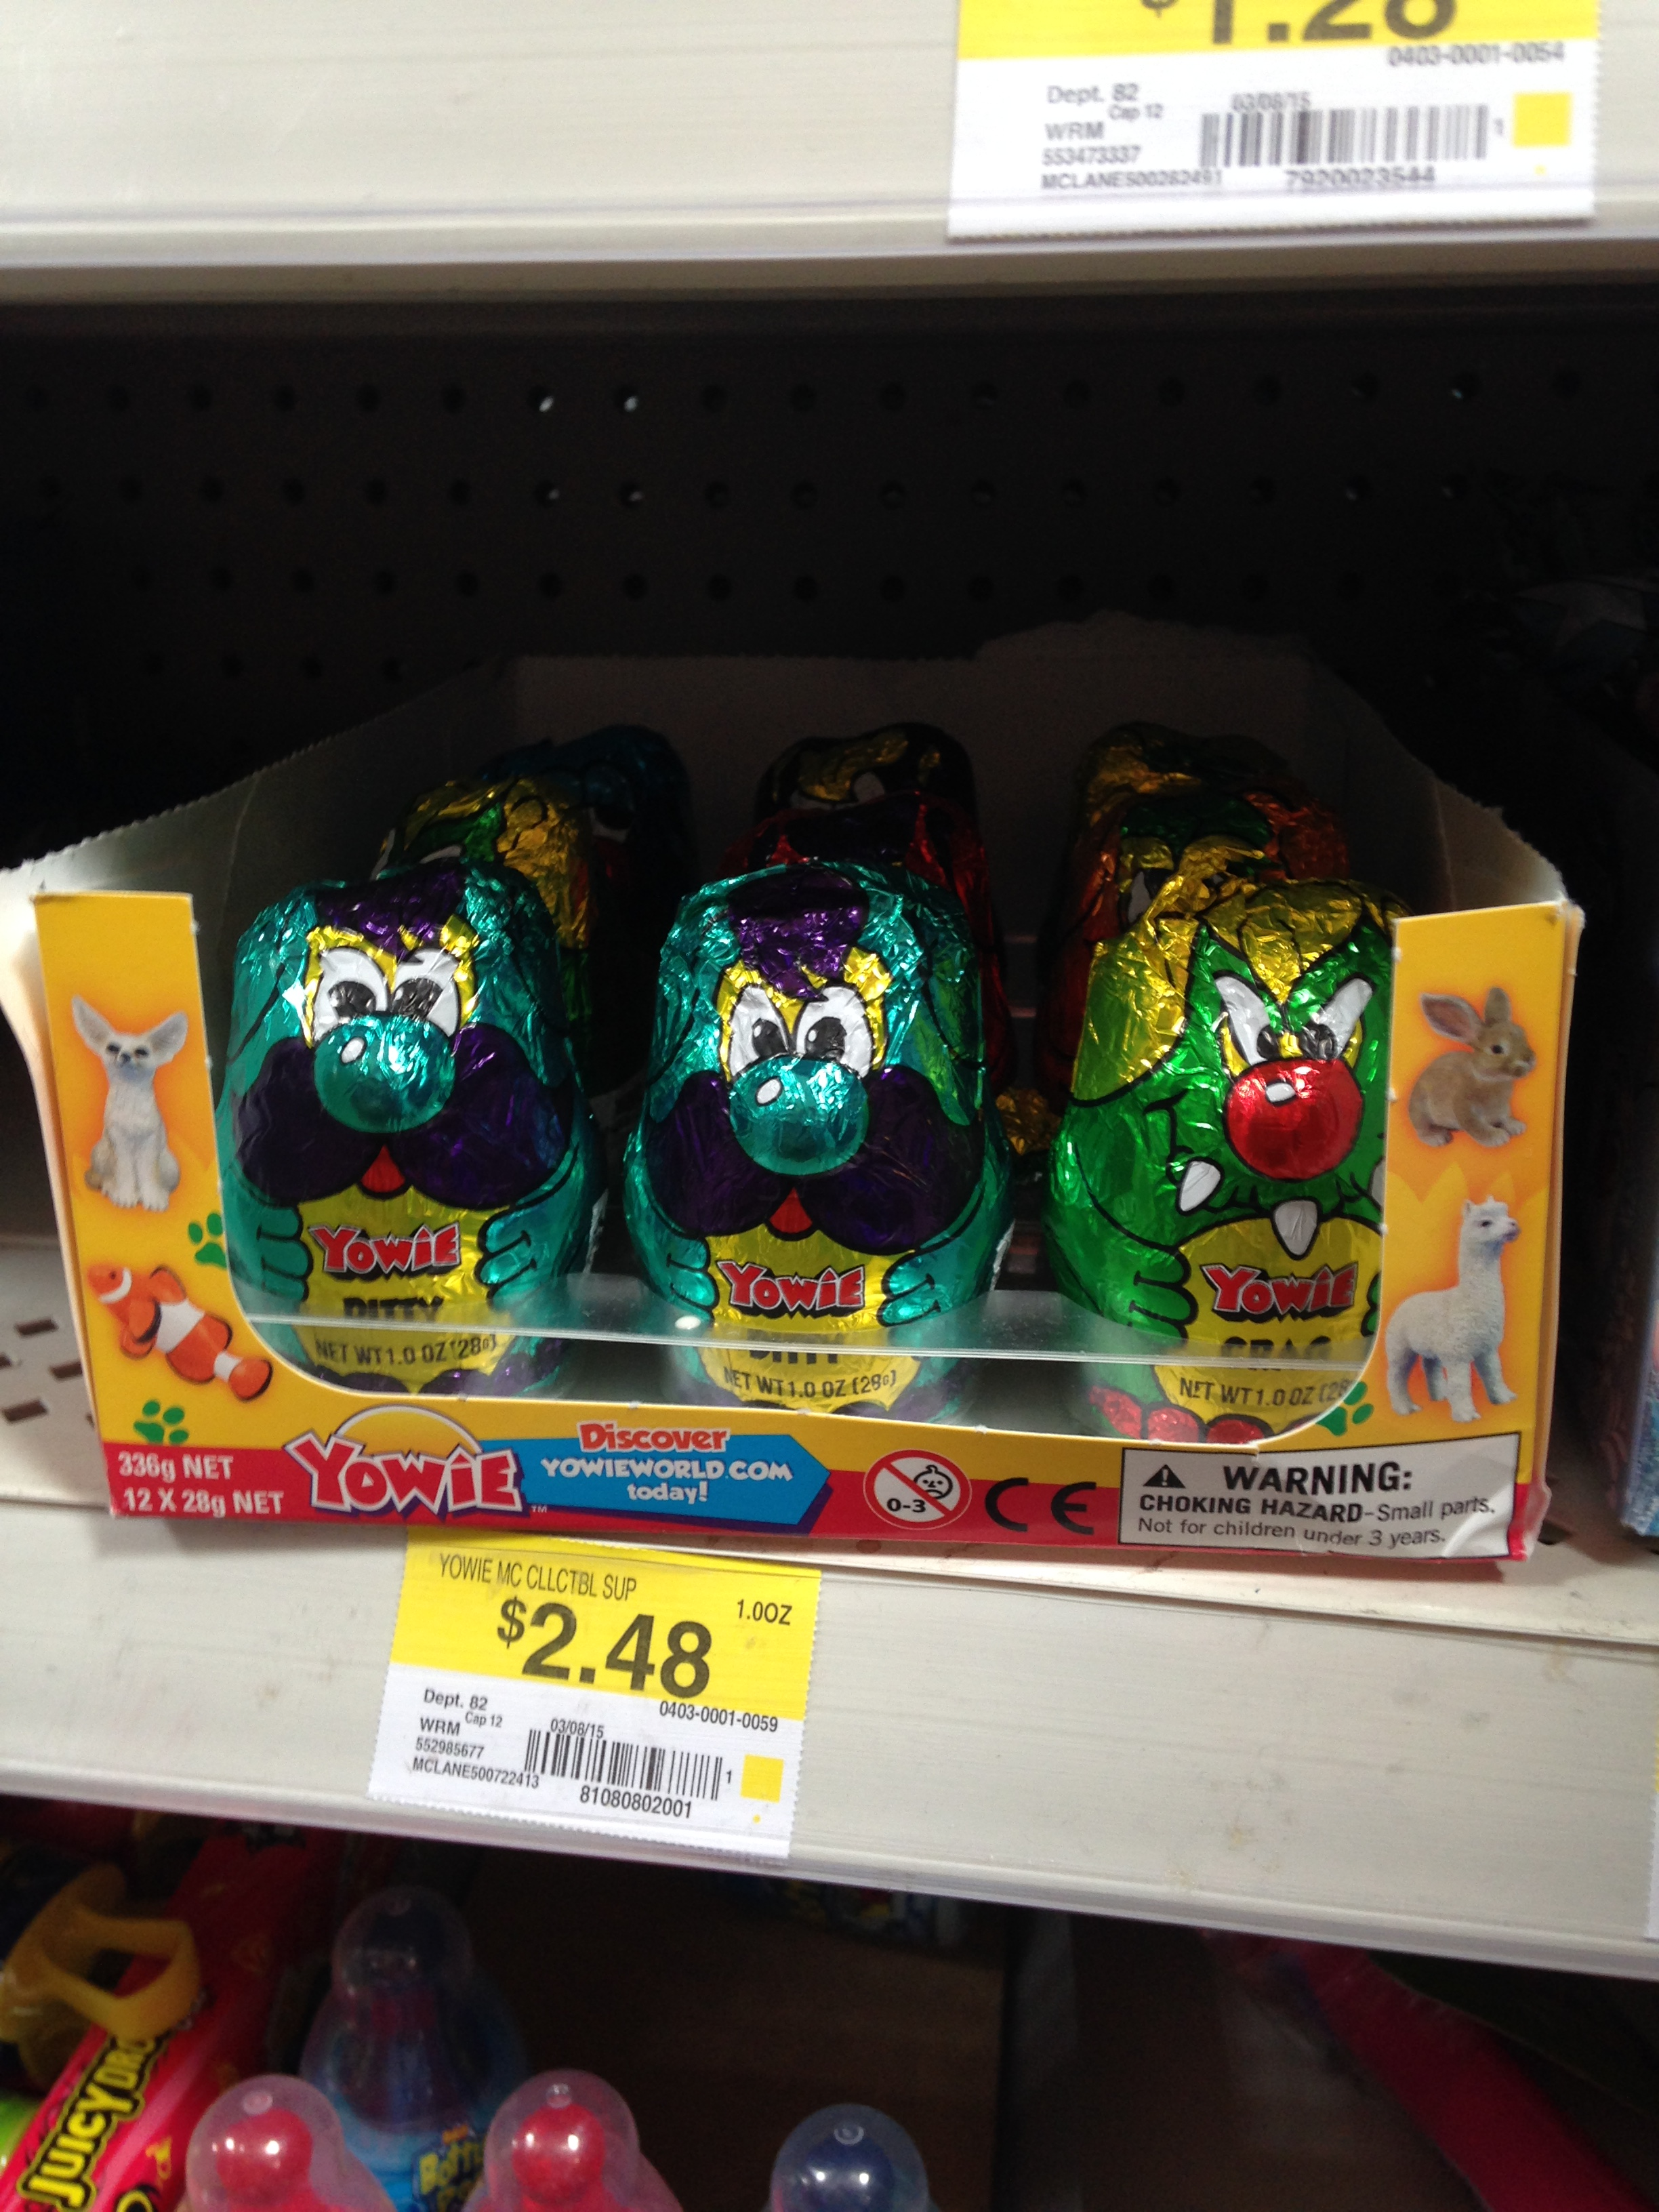 Yowie Chocolate Review | Free the Egg